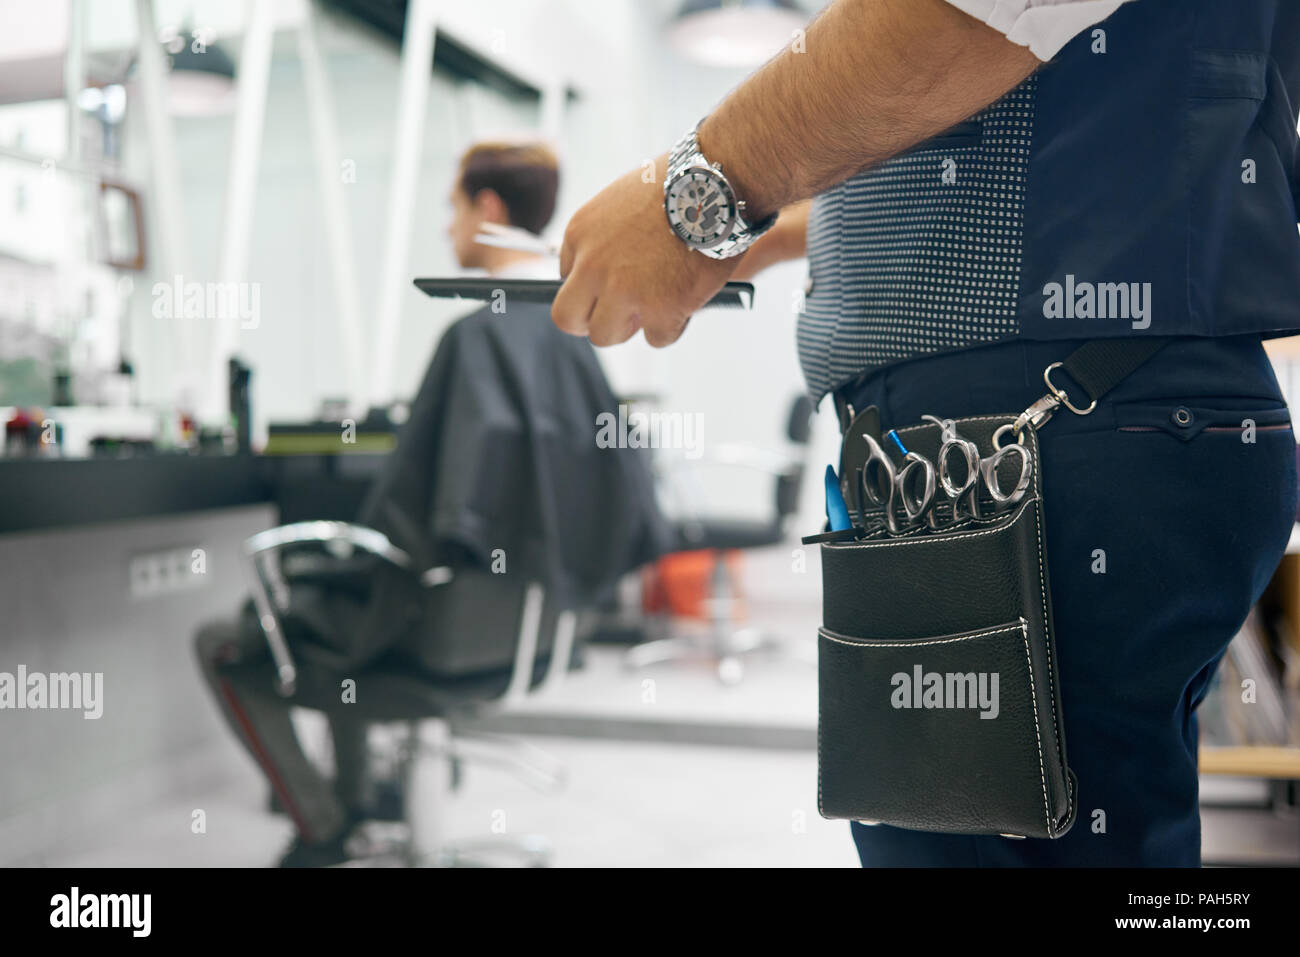 Close up of barber's leather bag with metallic sharp scissors for haircutting. Hairstyler wearing dark blue trousers, grey waistcoat, handwatch. Keeping black plastic comb. Client sitting behind. - Stock Image